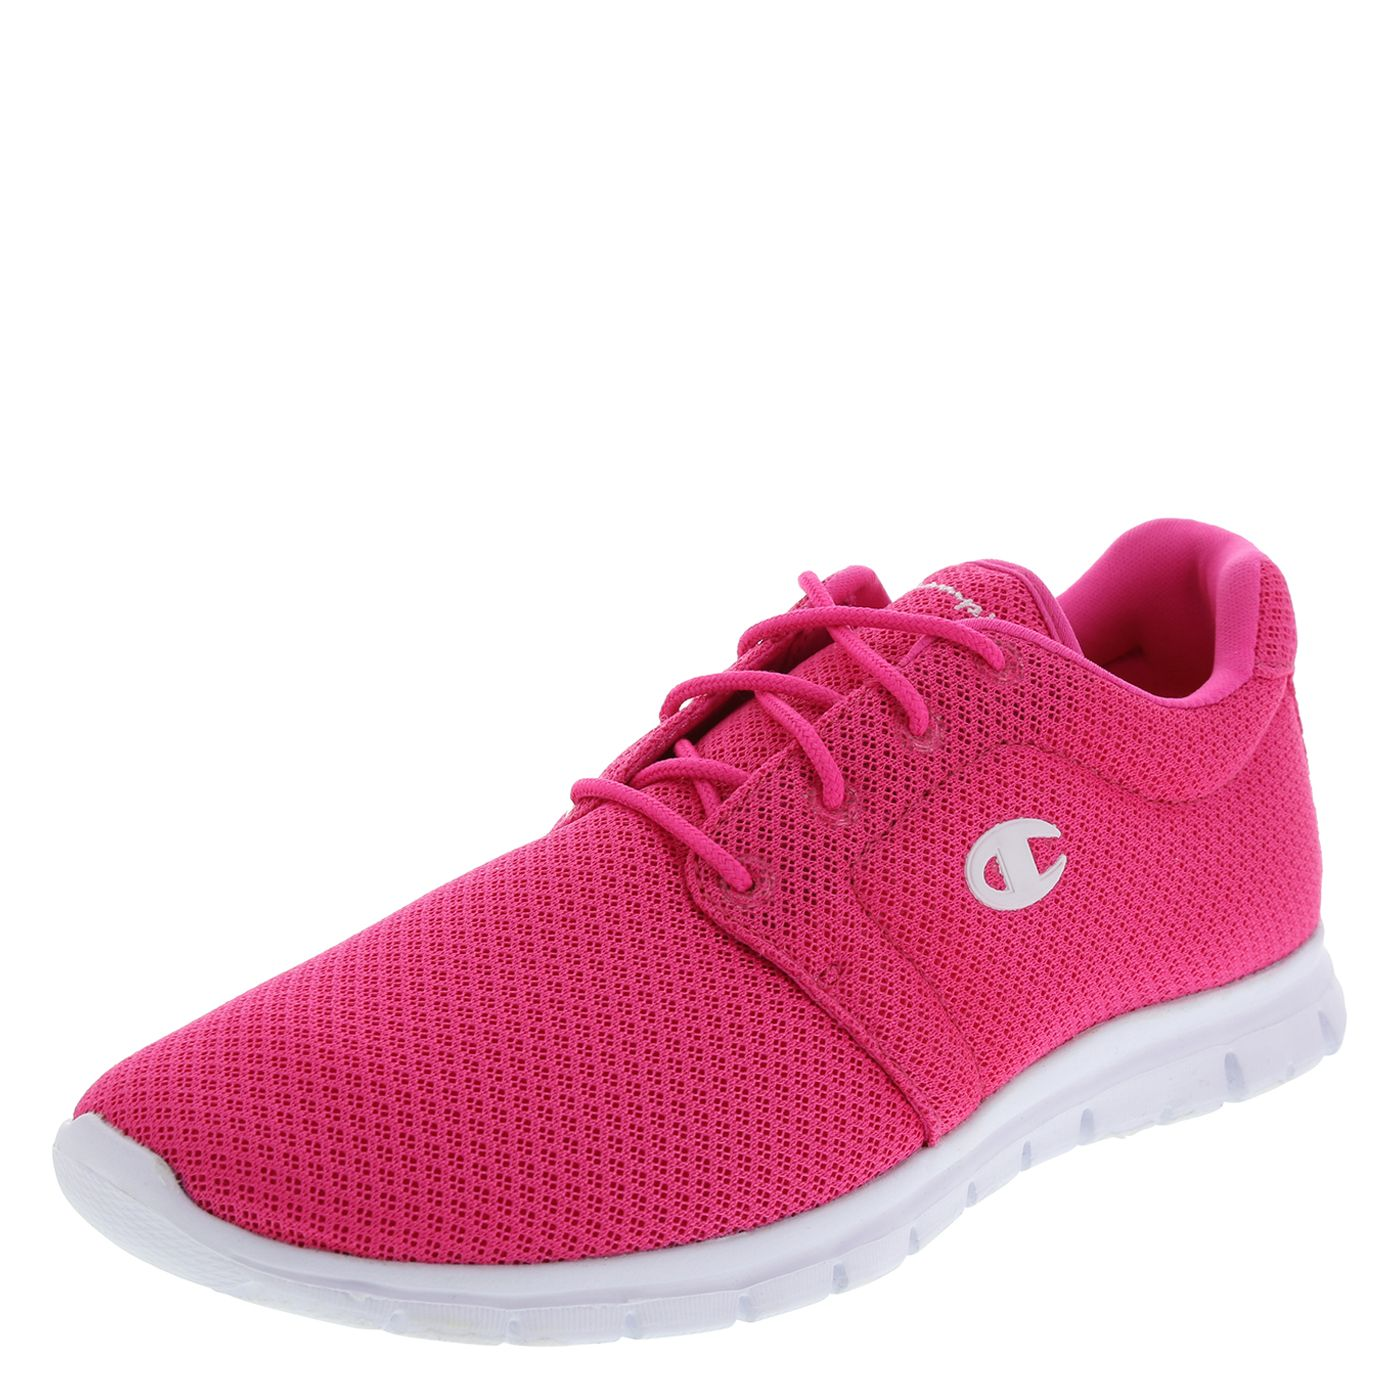 10dc298386067 payless.com Champion Women s Women s Ingage Runner (Color - Pink ...